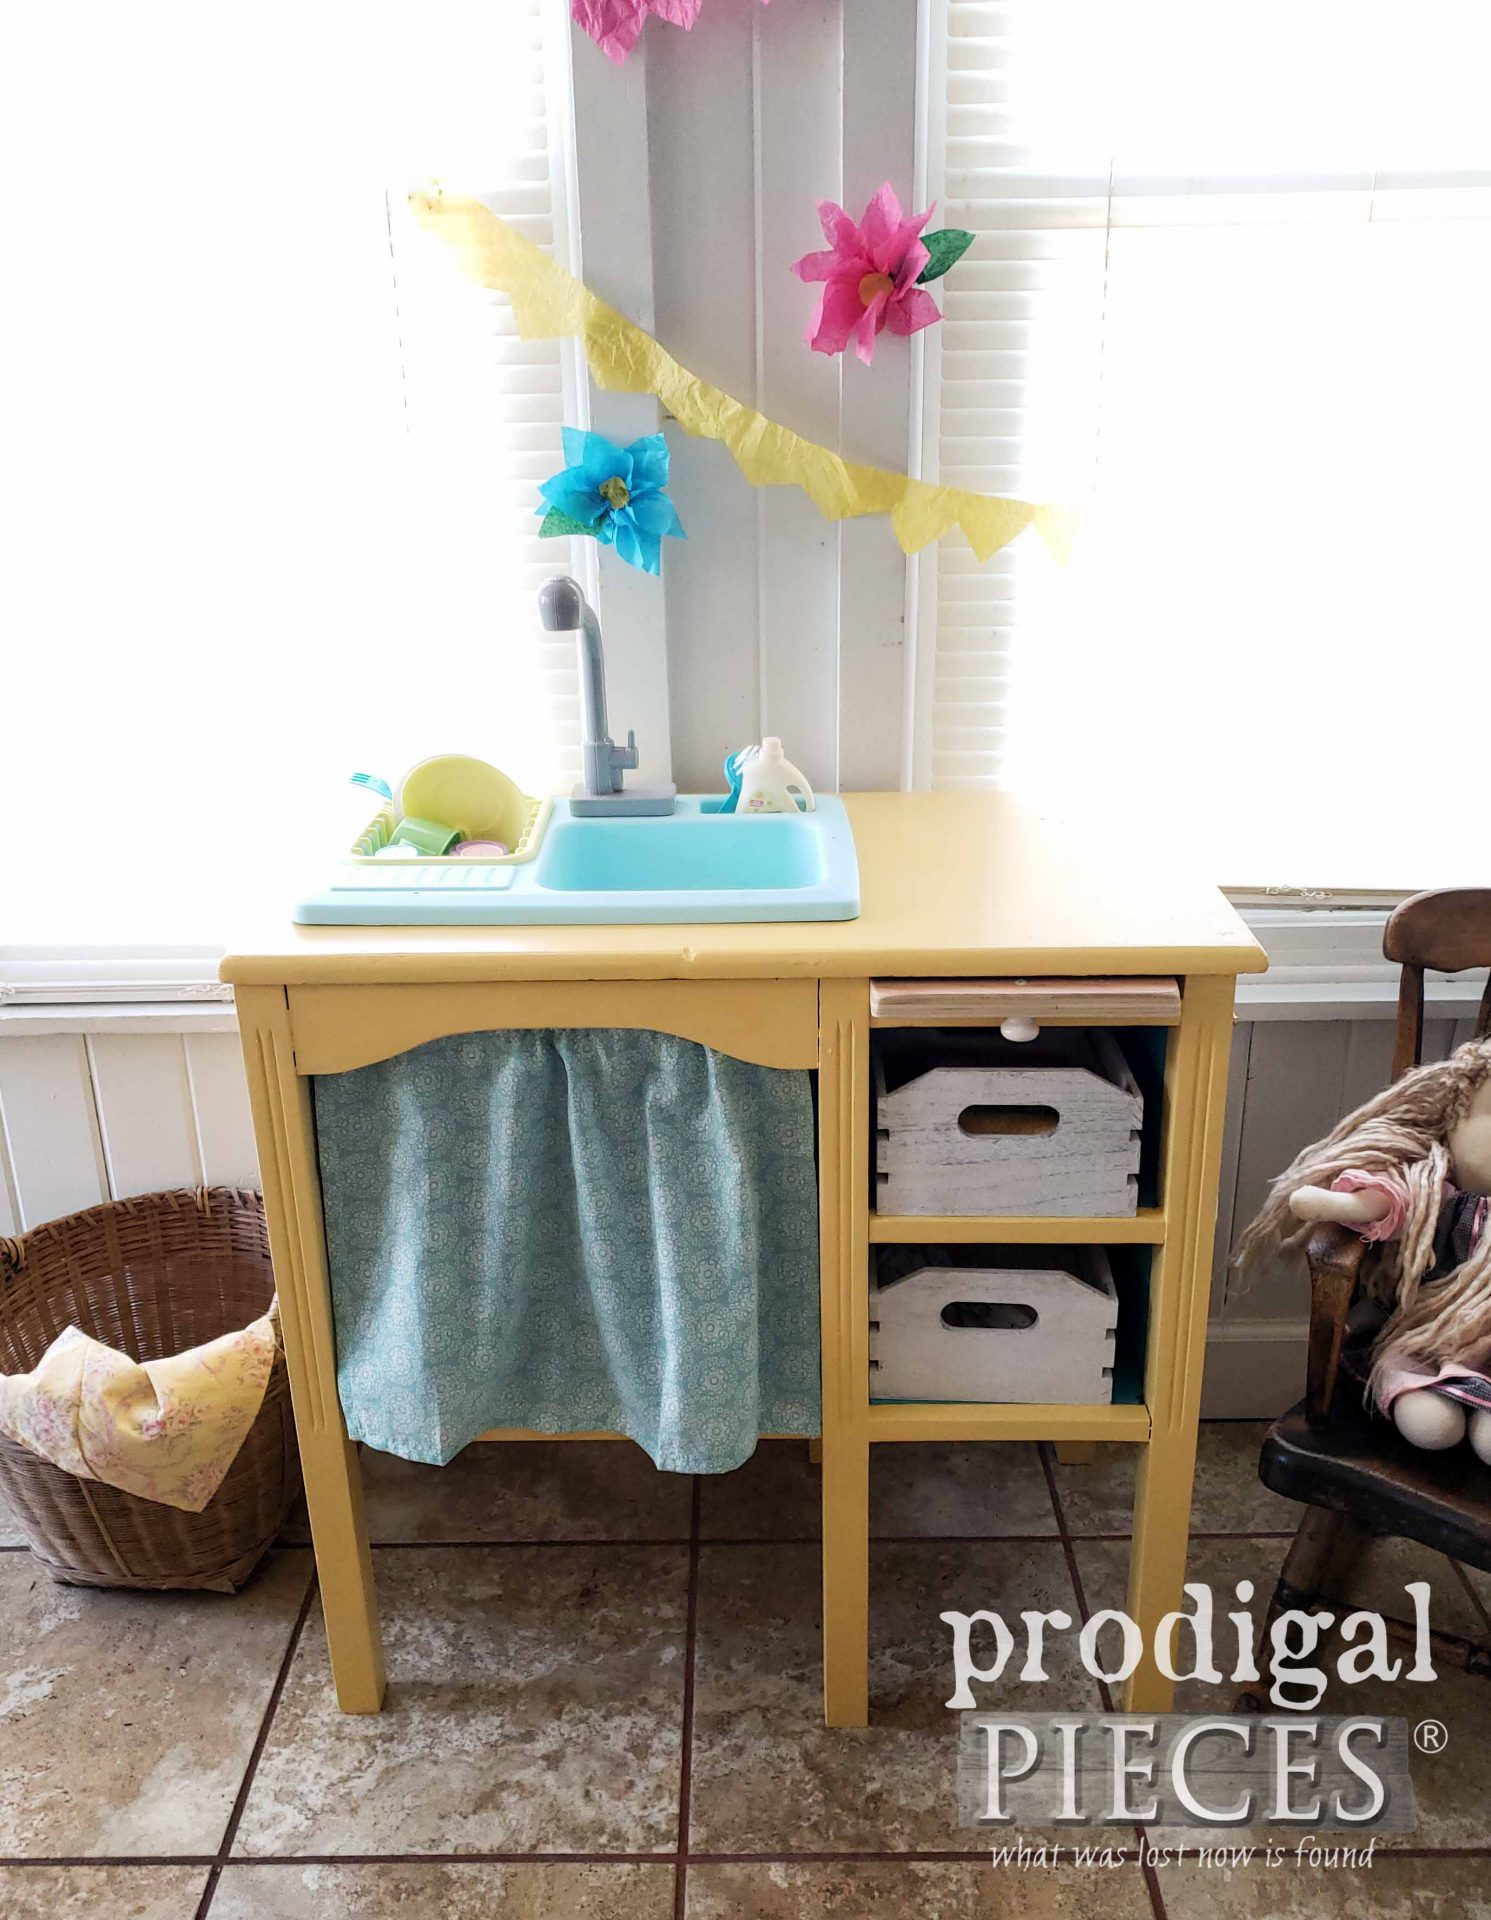 Upcycled Play Kitchen with Working Faucet and Kitchen Sink by Larissa of Prodigal Pieces | prodigalpieces.com #prodigalpieces #diy #kids #play #pretend #fun #home #homedecor #furniture